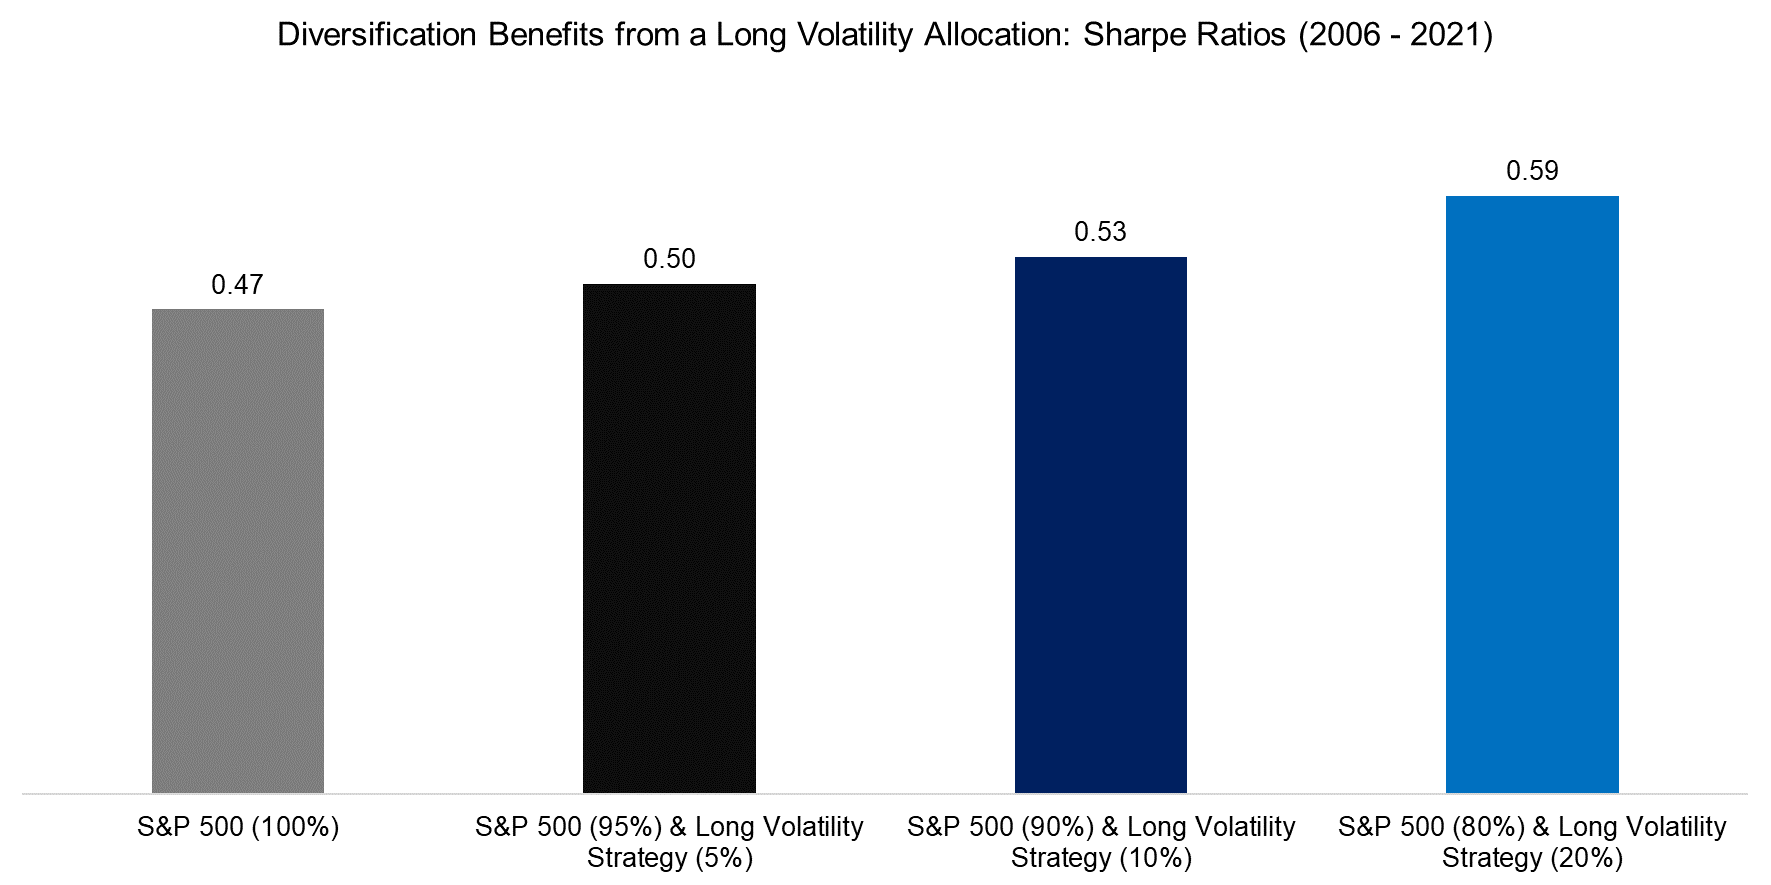 Diversification Benefits from a Long Volatility Allocation Sharpe Ratios (2006 - 2021